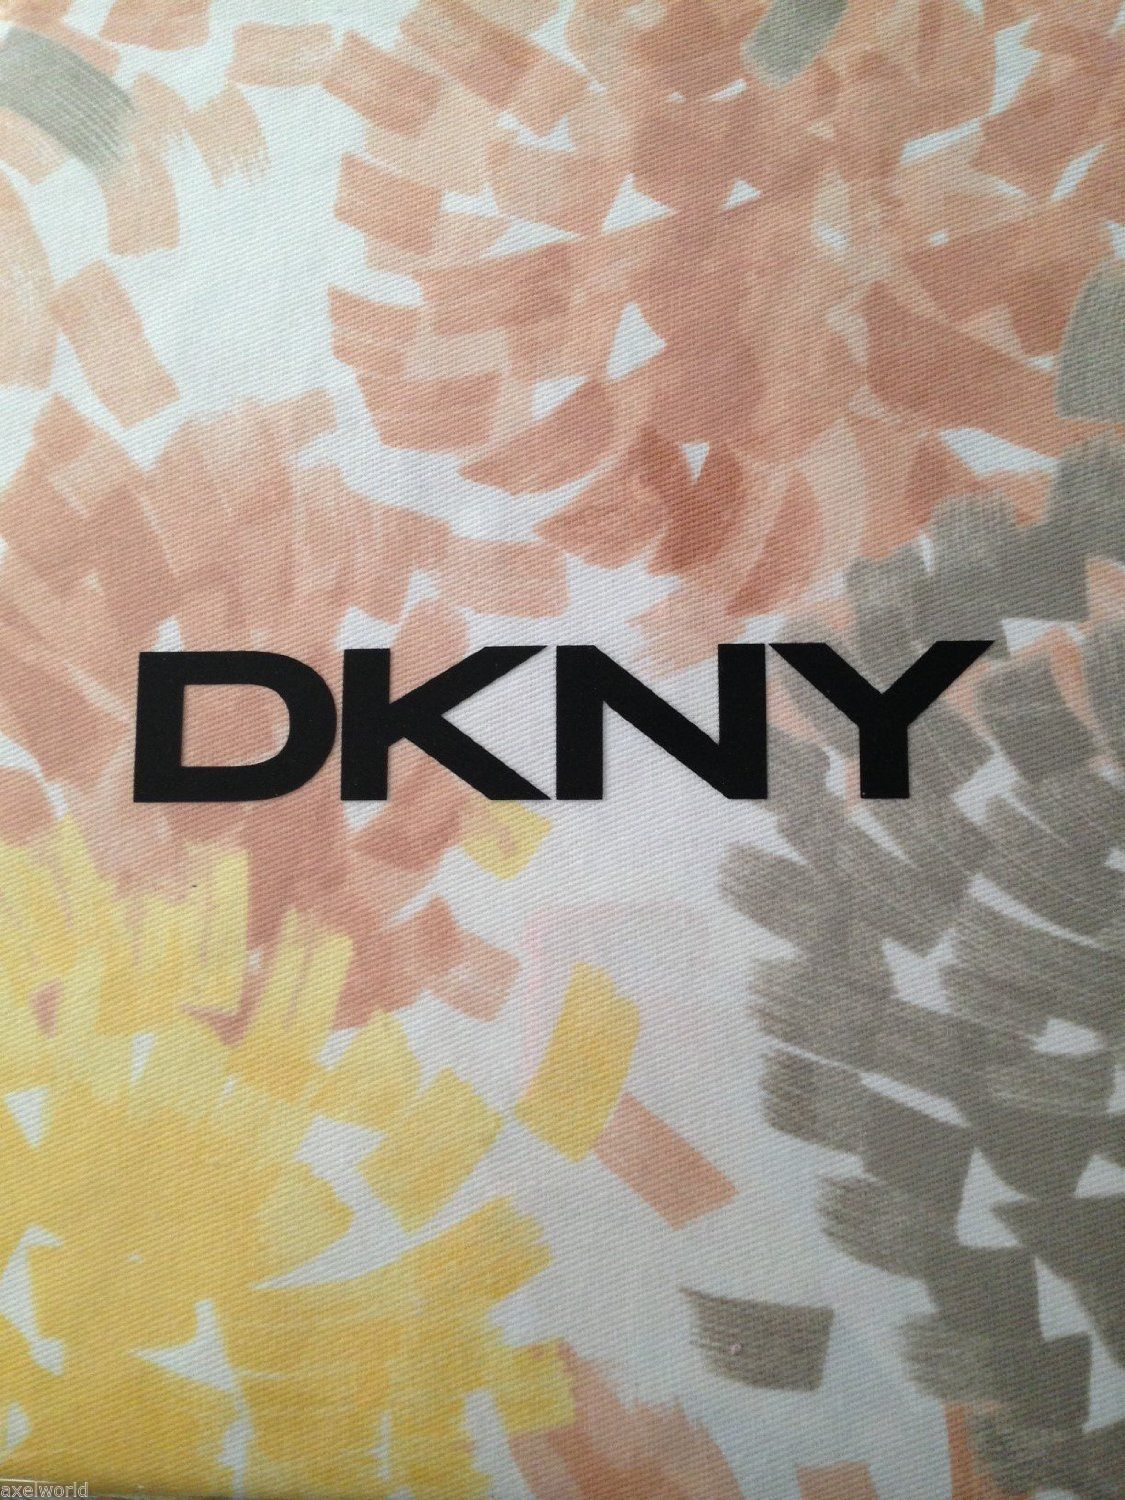 Dkny Brushstroke Floral 1 Pc Shower And 50 Similar Items